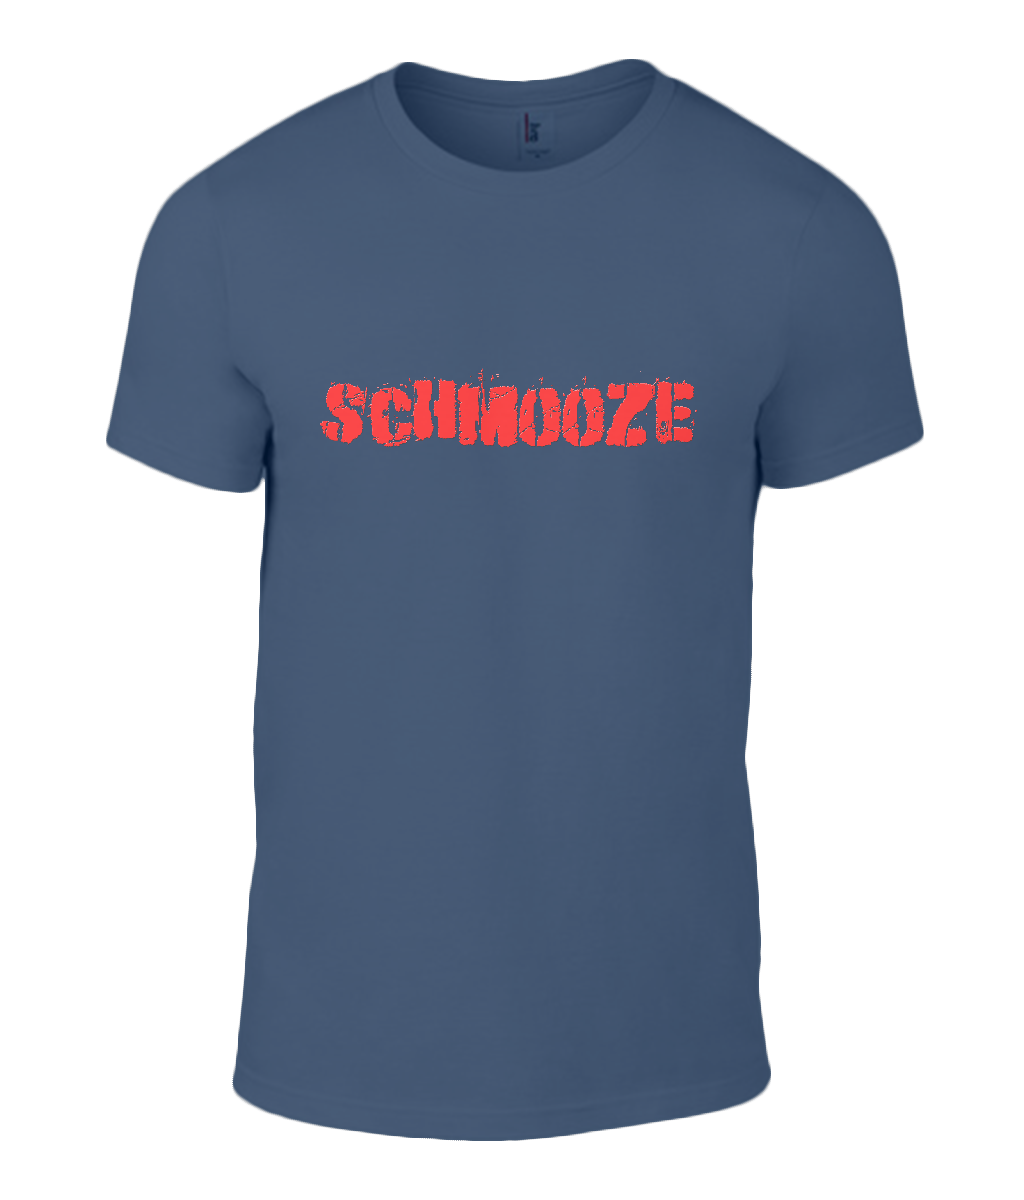 Round Neck T-Shirt - Schmooze - Lokshen Pudding UK - Navy